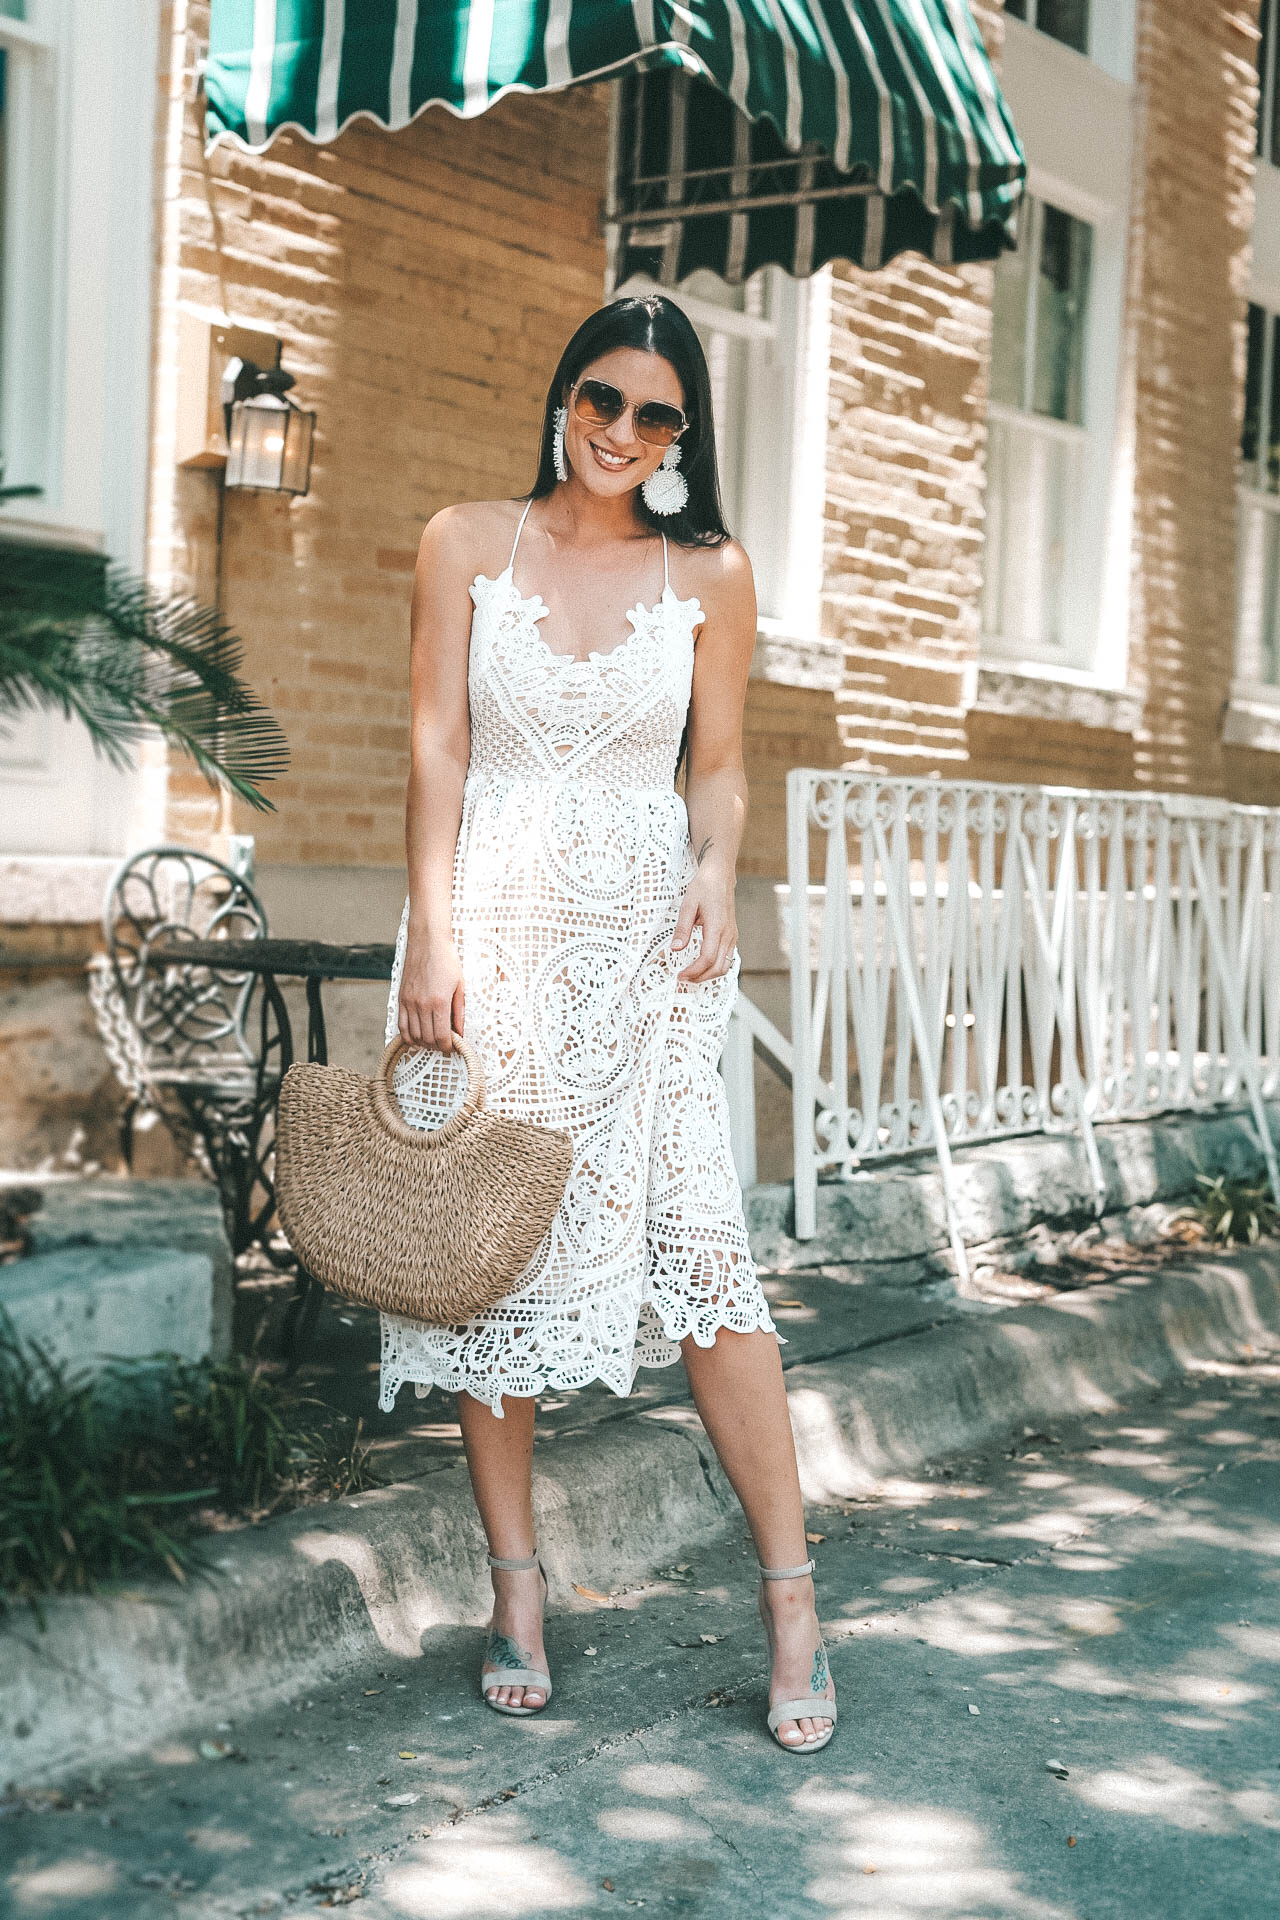 Beautiful lace up back detail with Baublebar statement earrings. - The Most Versatile White Lace Dress for Summer featured by popular Austin fashion blogger Dressed to Kill #fashion #style #whitedress #dresses #womensoutfit #womensfashion #outfits #white #summerfashion #dtkaustin